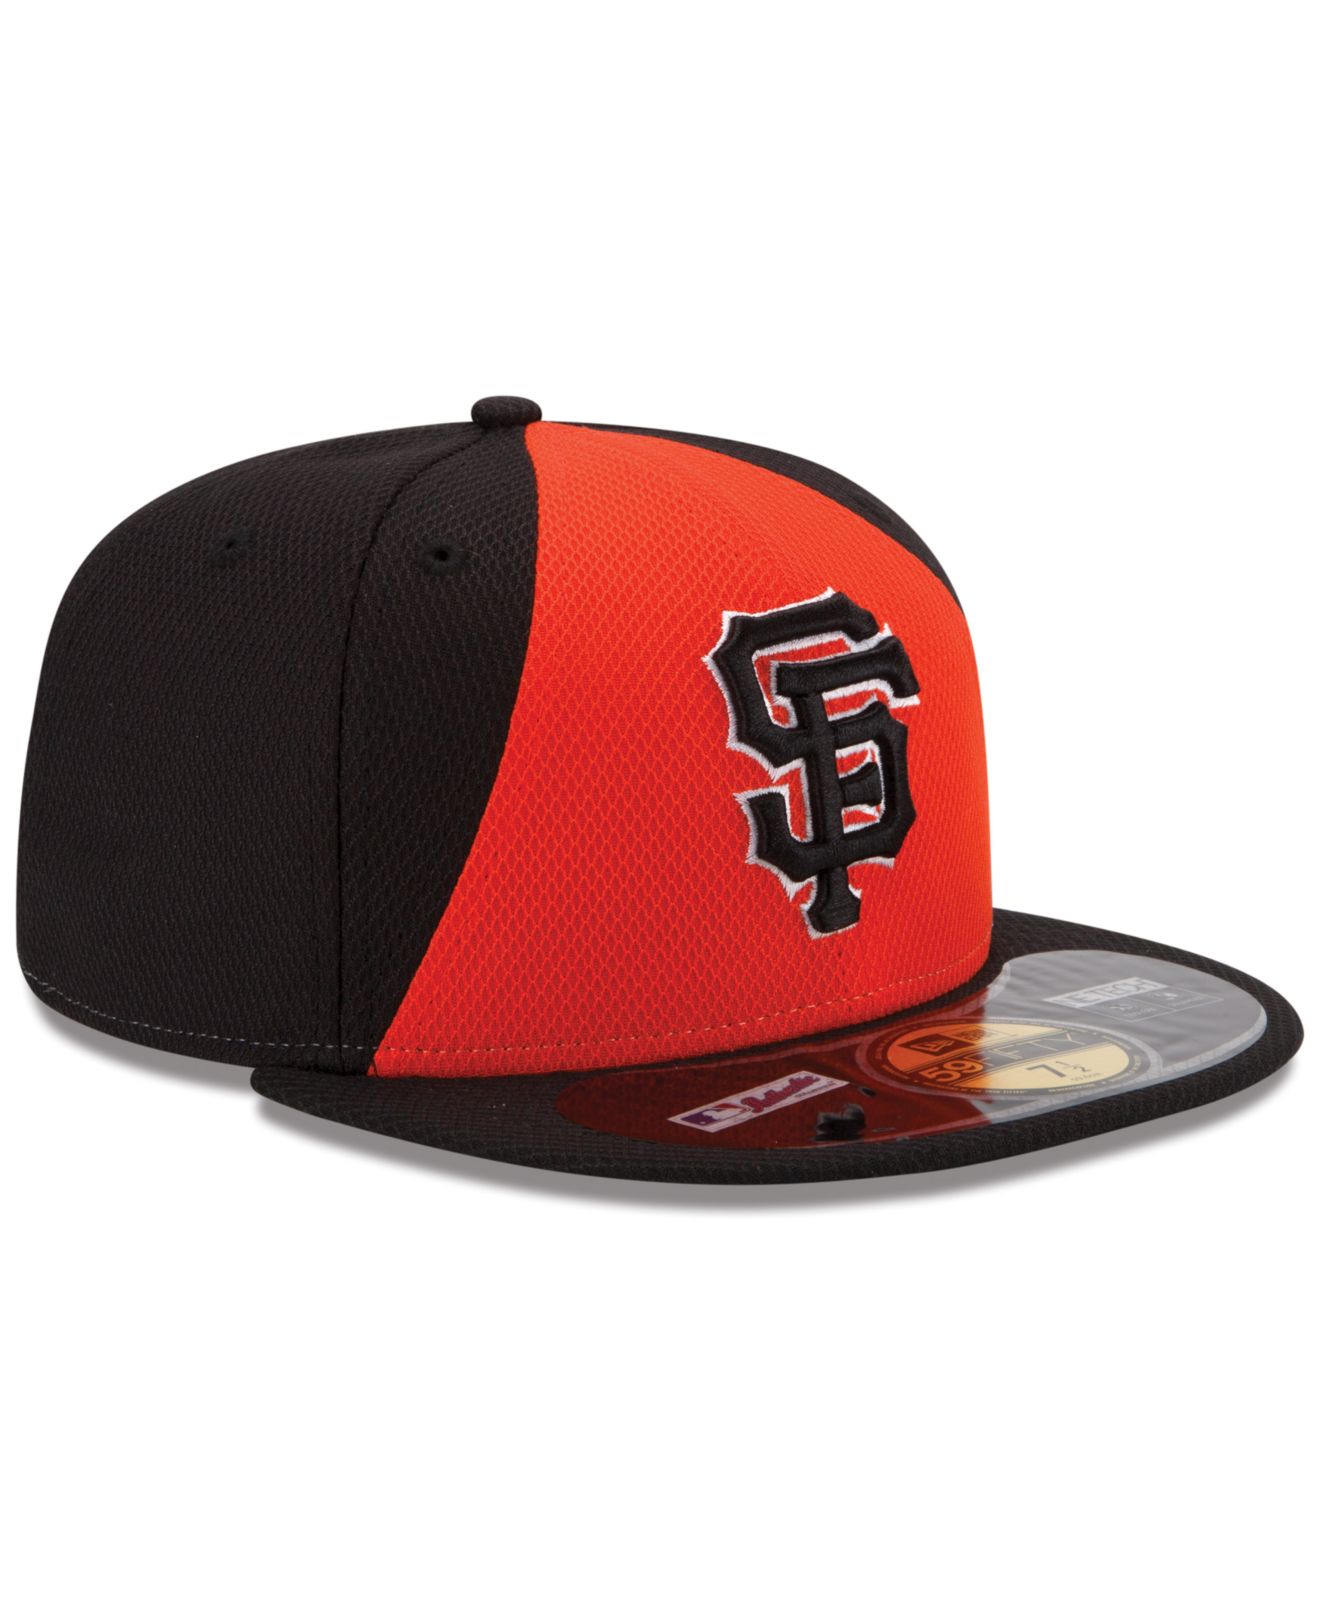 finest selection e4d21 277a9 KTZ San Francisco Giants 2014 All Star Game Patch 59Fifty Cap in Red ...